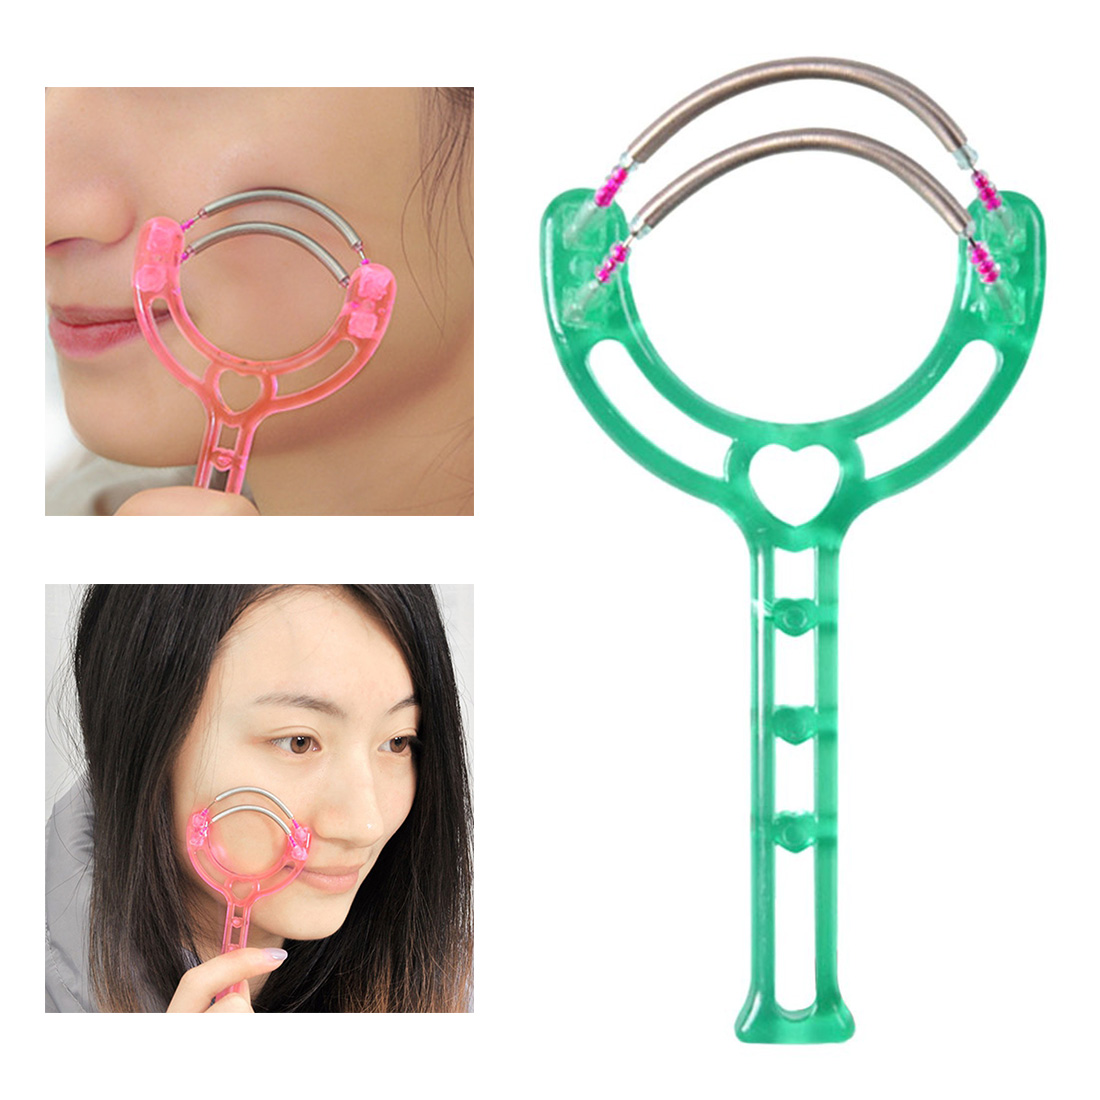 Good Quality 1 PC Handheld Double Springs Roller Face Hair Removal Epilator Hair Threader Facial Hair Removing Tool Random Color